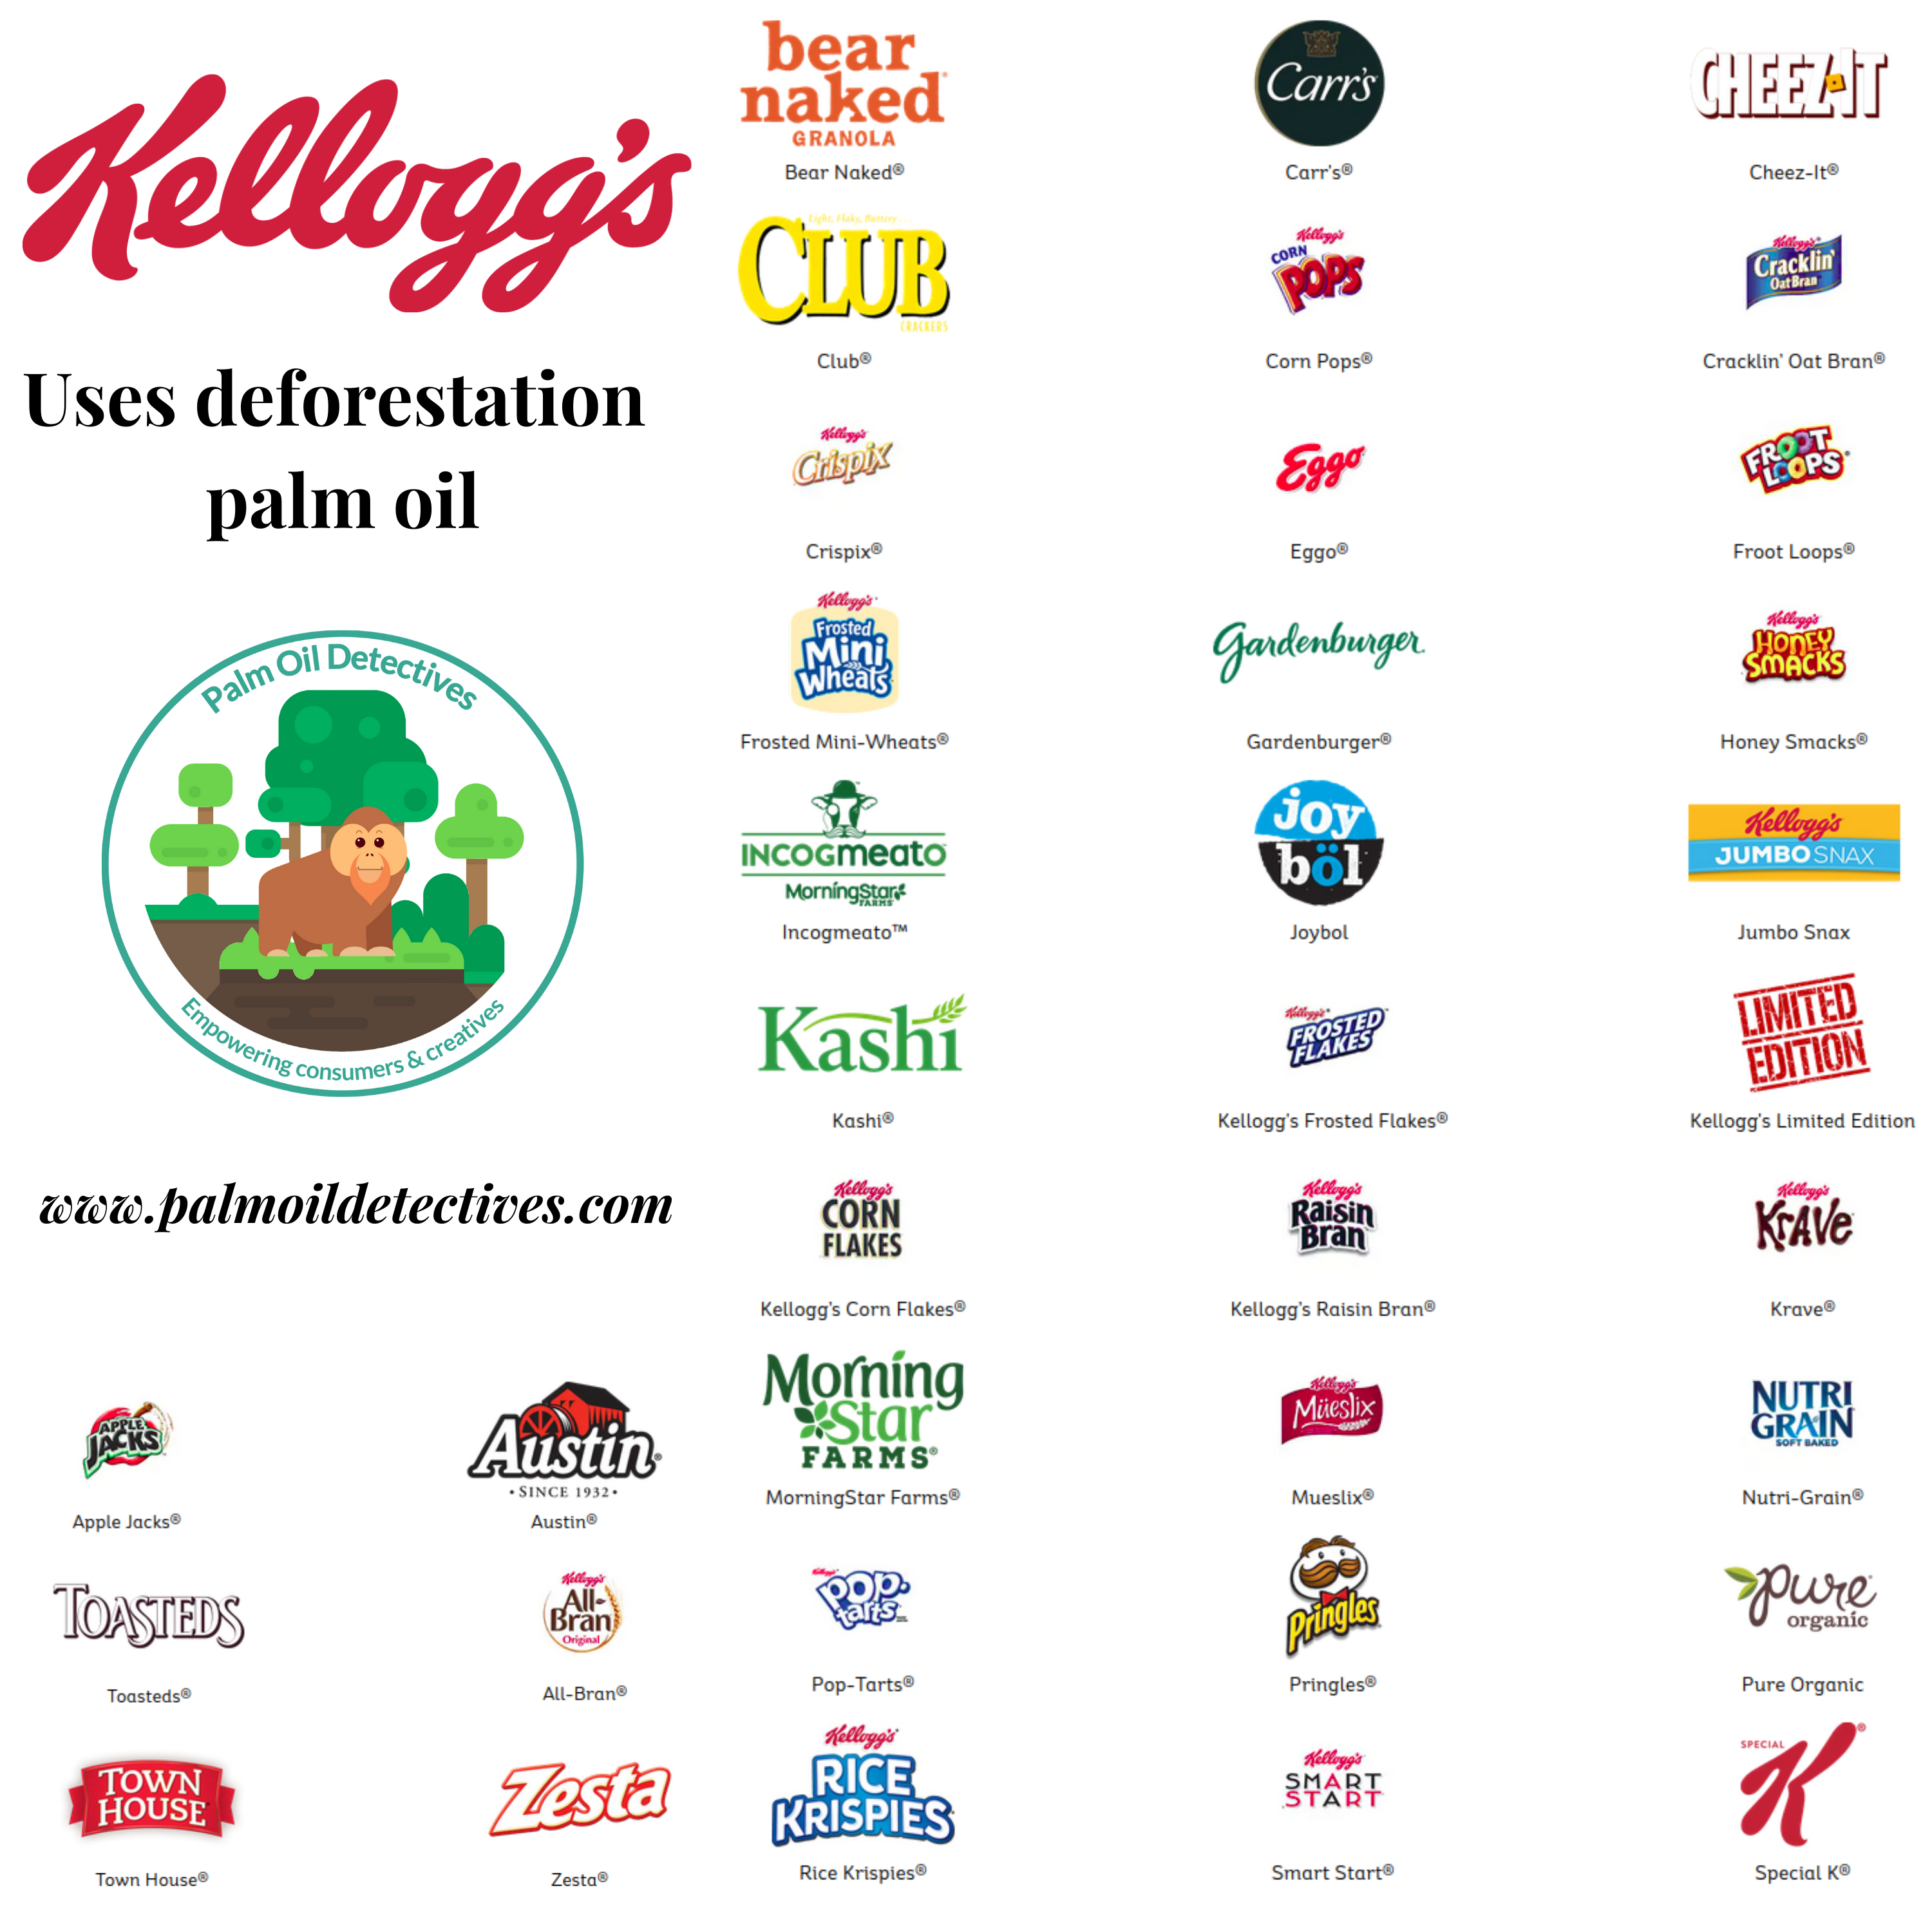 Kelloggs brands with deforestation palm oil